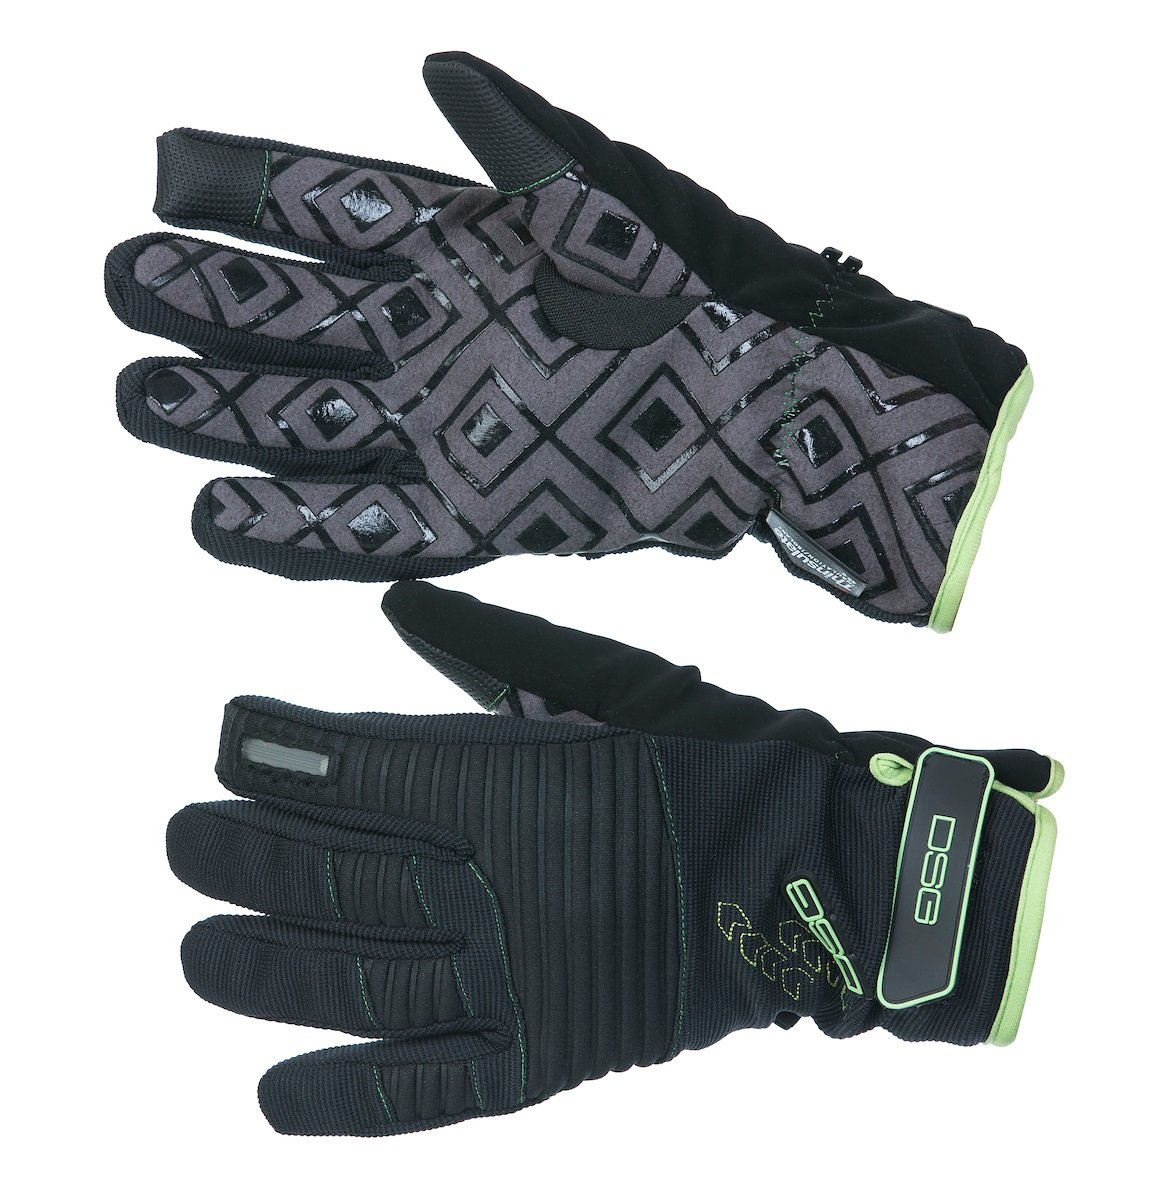 DSG Outerwear Versa-Style Gloves, Green Apple, X-Small by DSG Outerwear